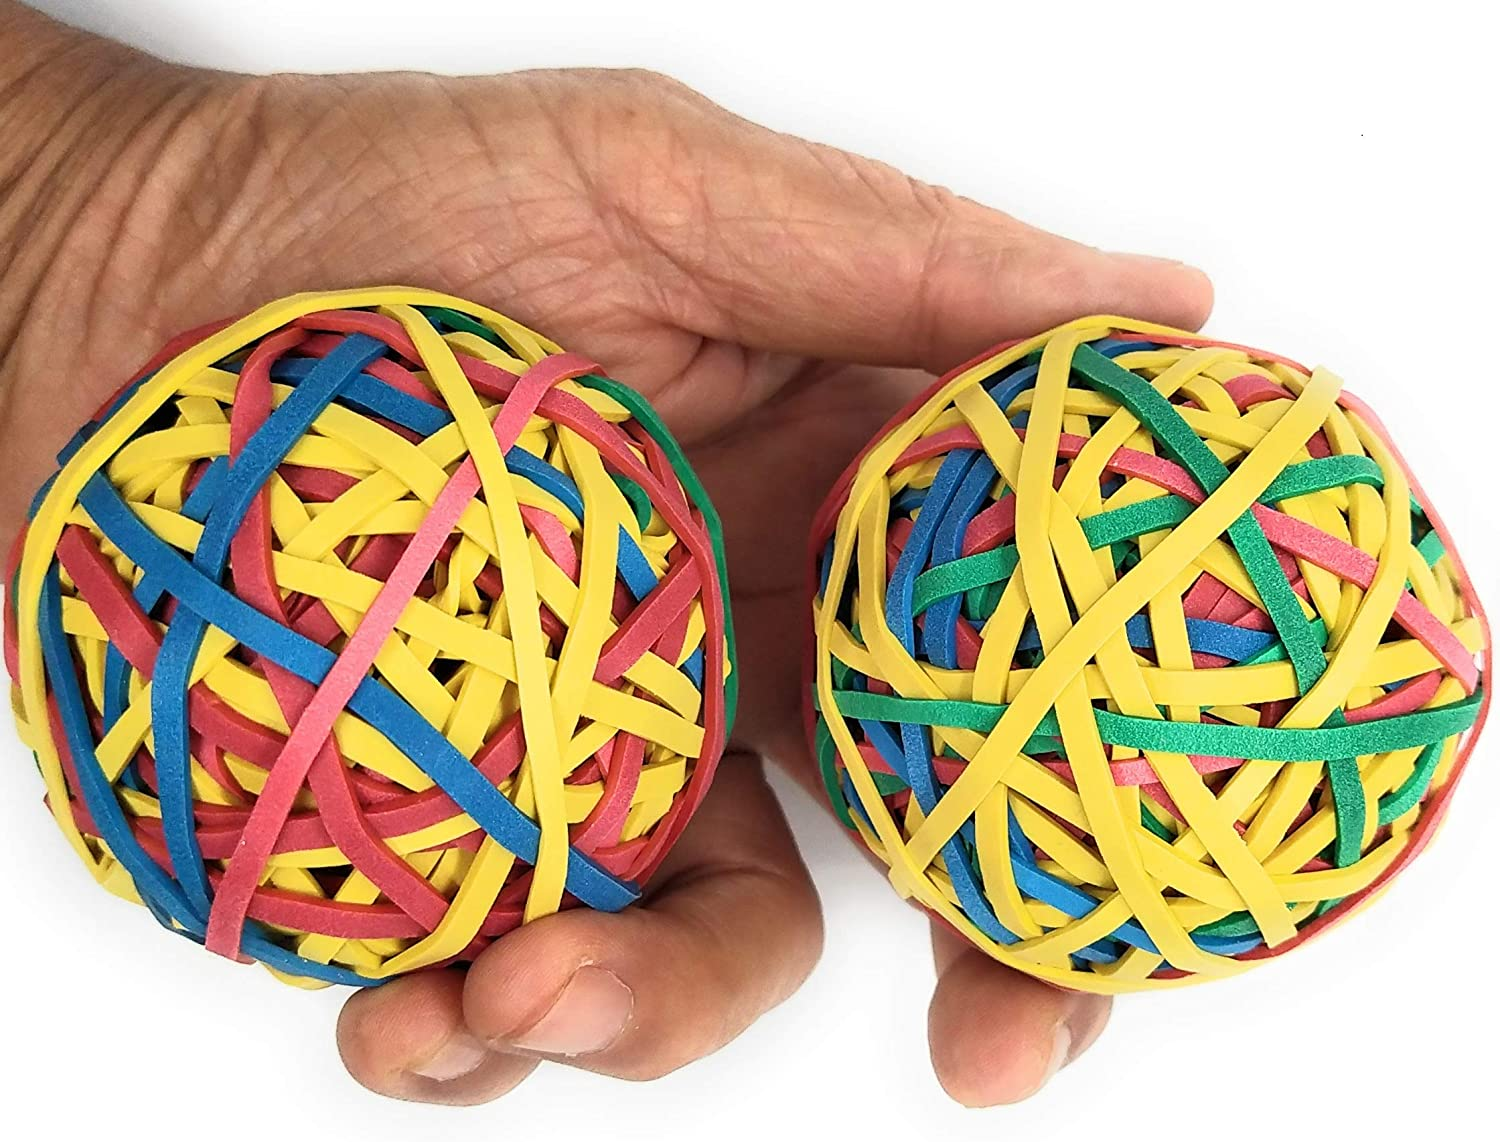 Assorted Color Rubber Band Ball (135 gm x 2) (>195 Rubber Bands per Ball) for DIY, Arts & Crafts, Document Organizing - Pack of 2 by Yosogo